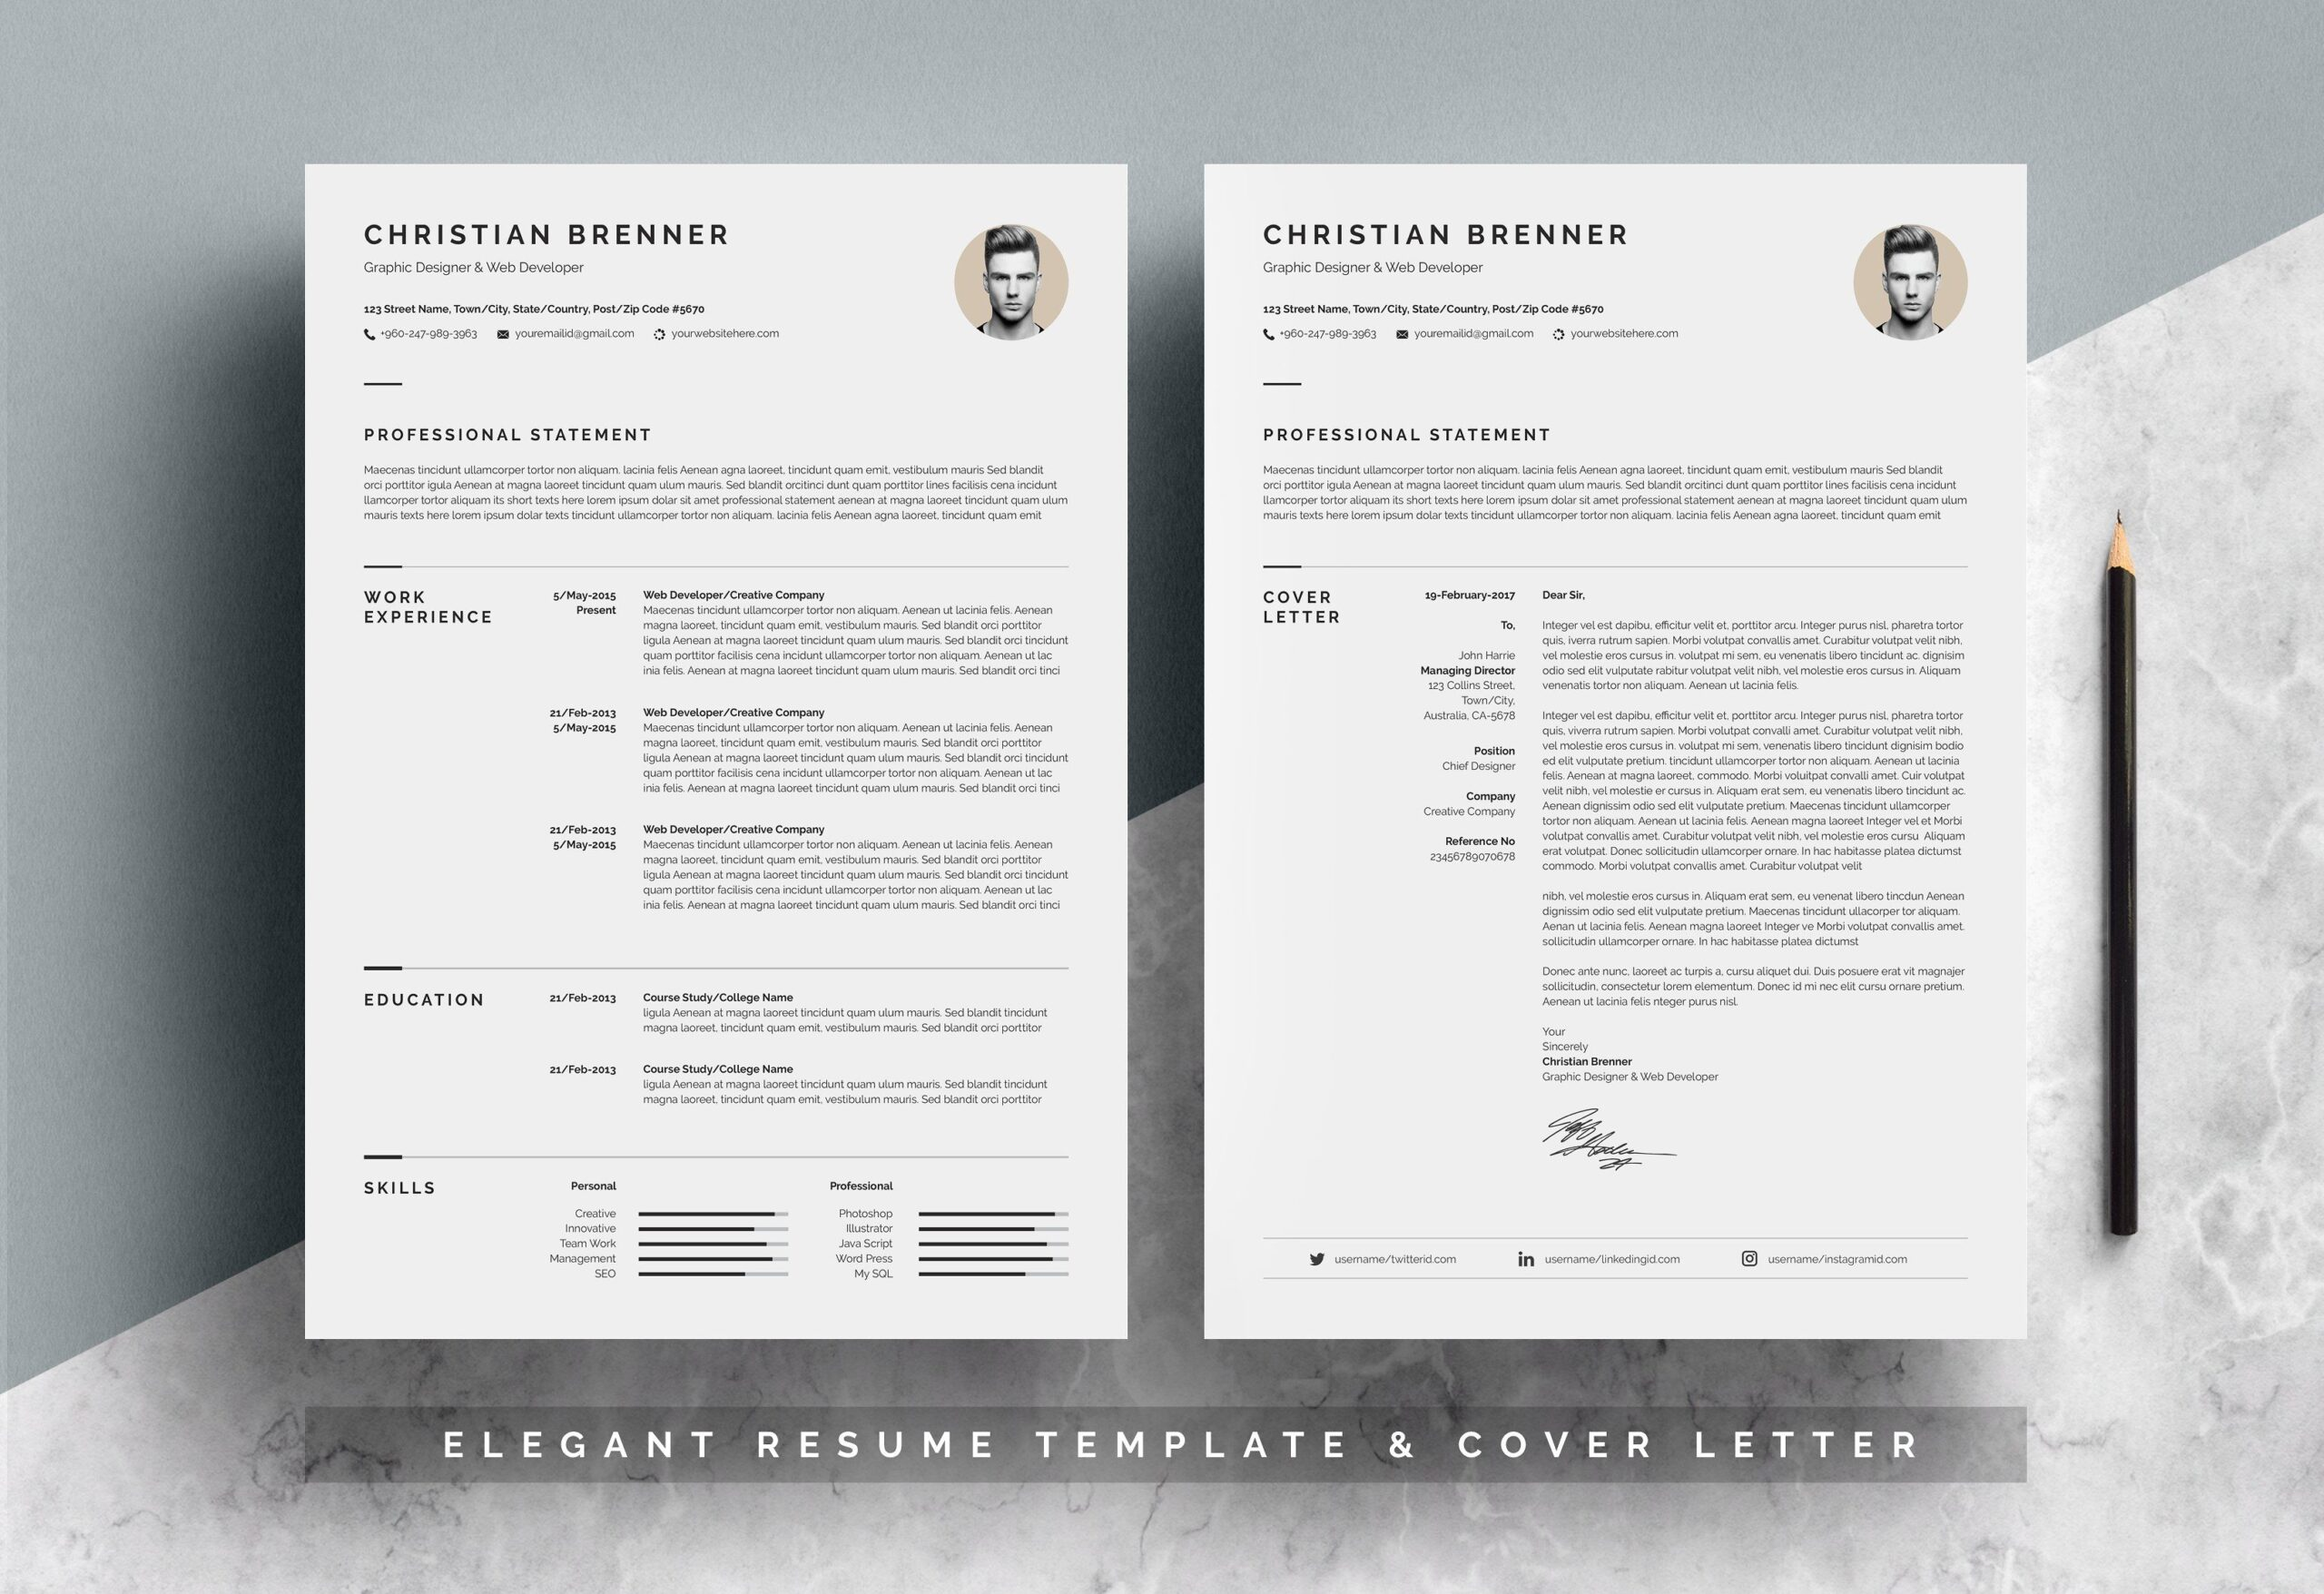 elegant resume template one templates paper size for and application letter skills your Resume Paper Size For Resume And Application Letter